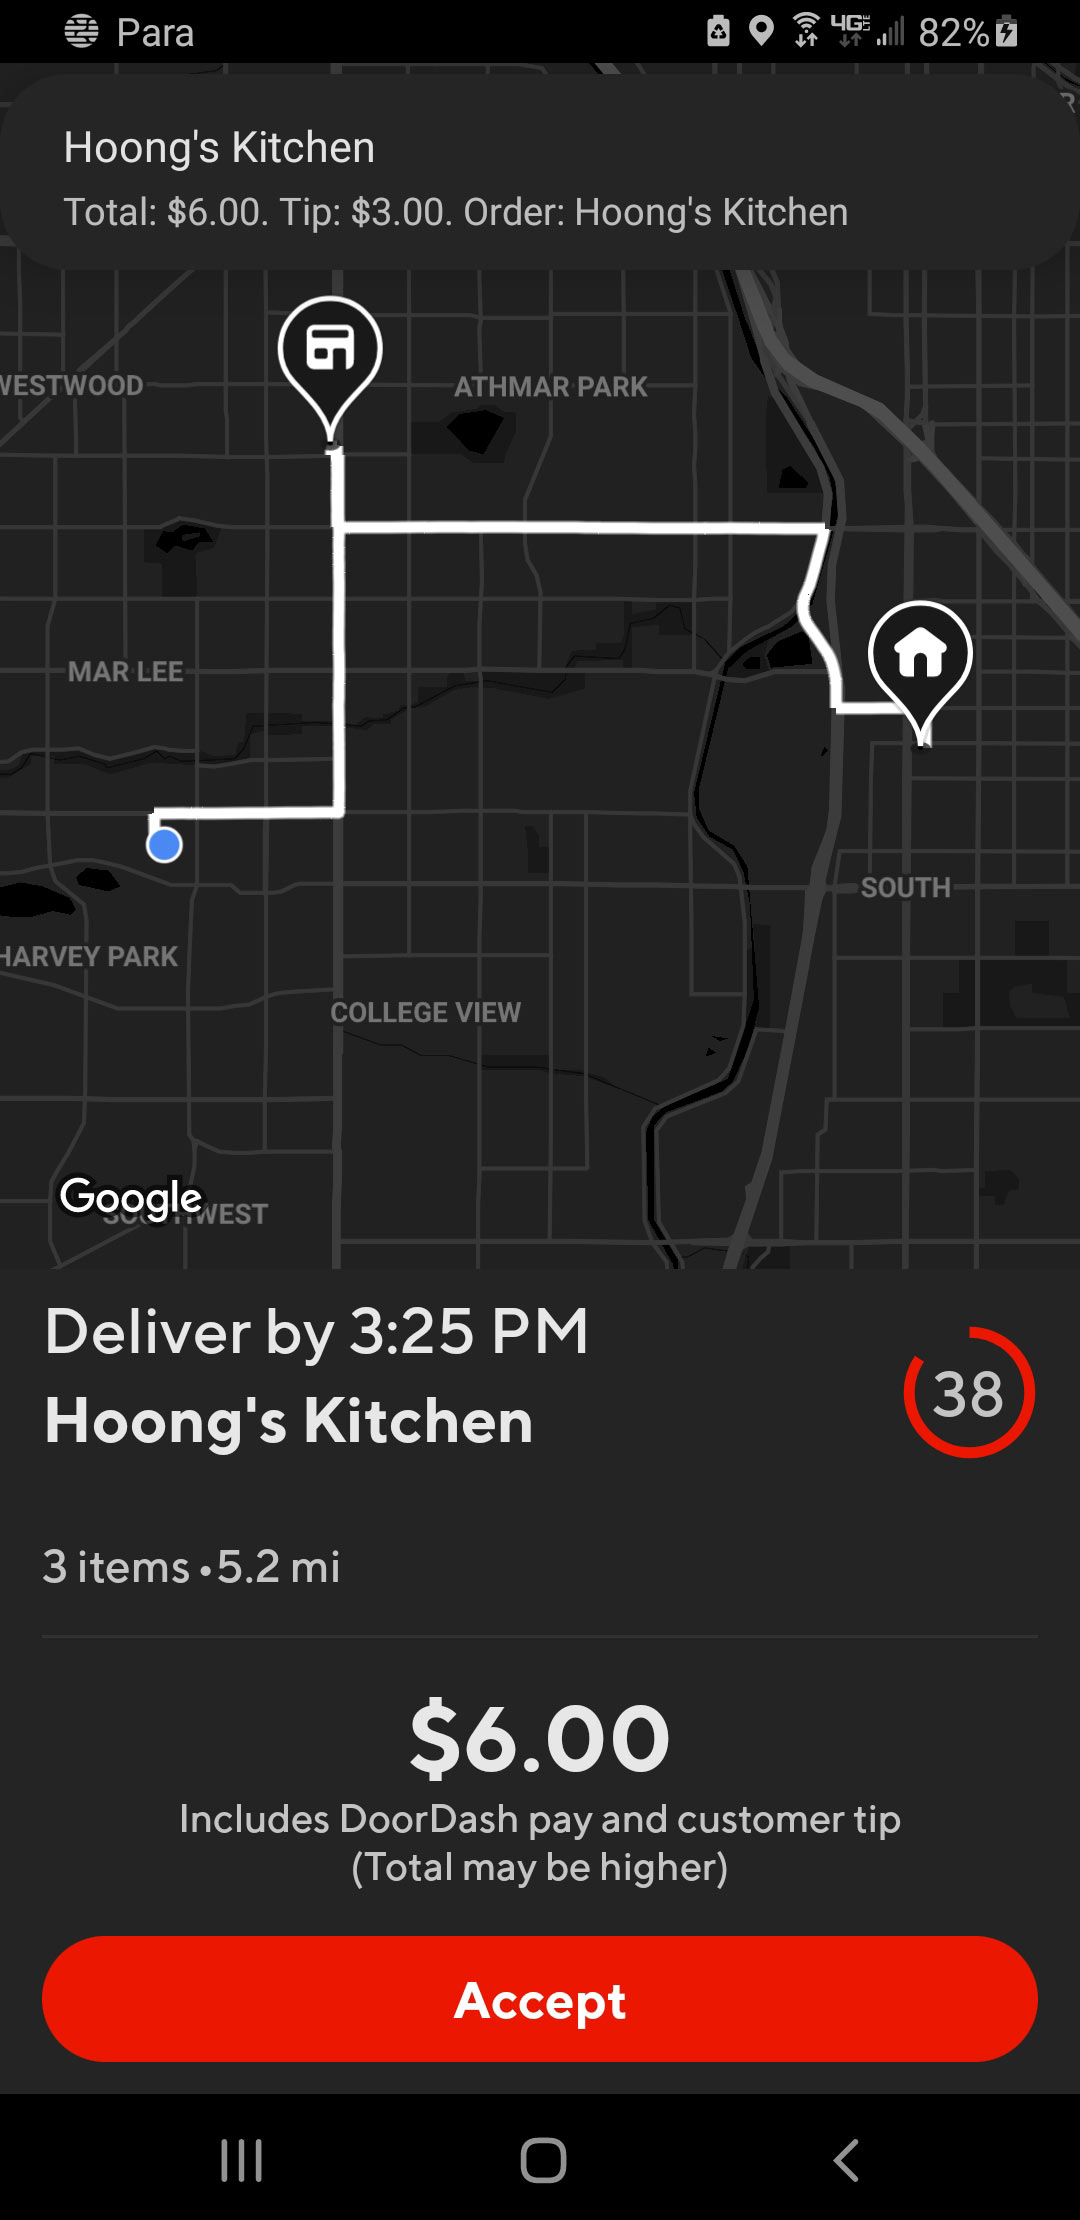 Screenshot of a delivery offer from Doordash, with notification overlaid from Para Tip Transparency showing the restaurant, total pay, and tip amount for the offer.